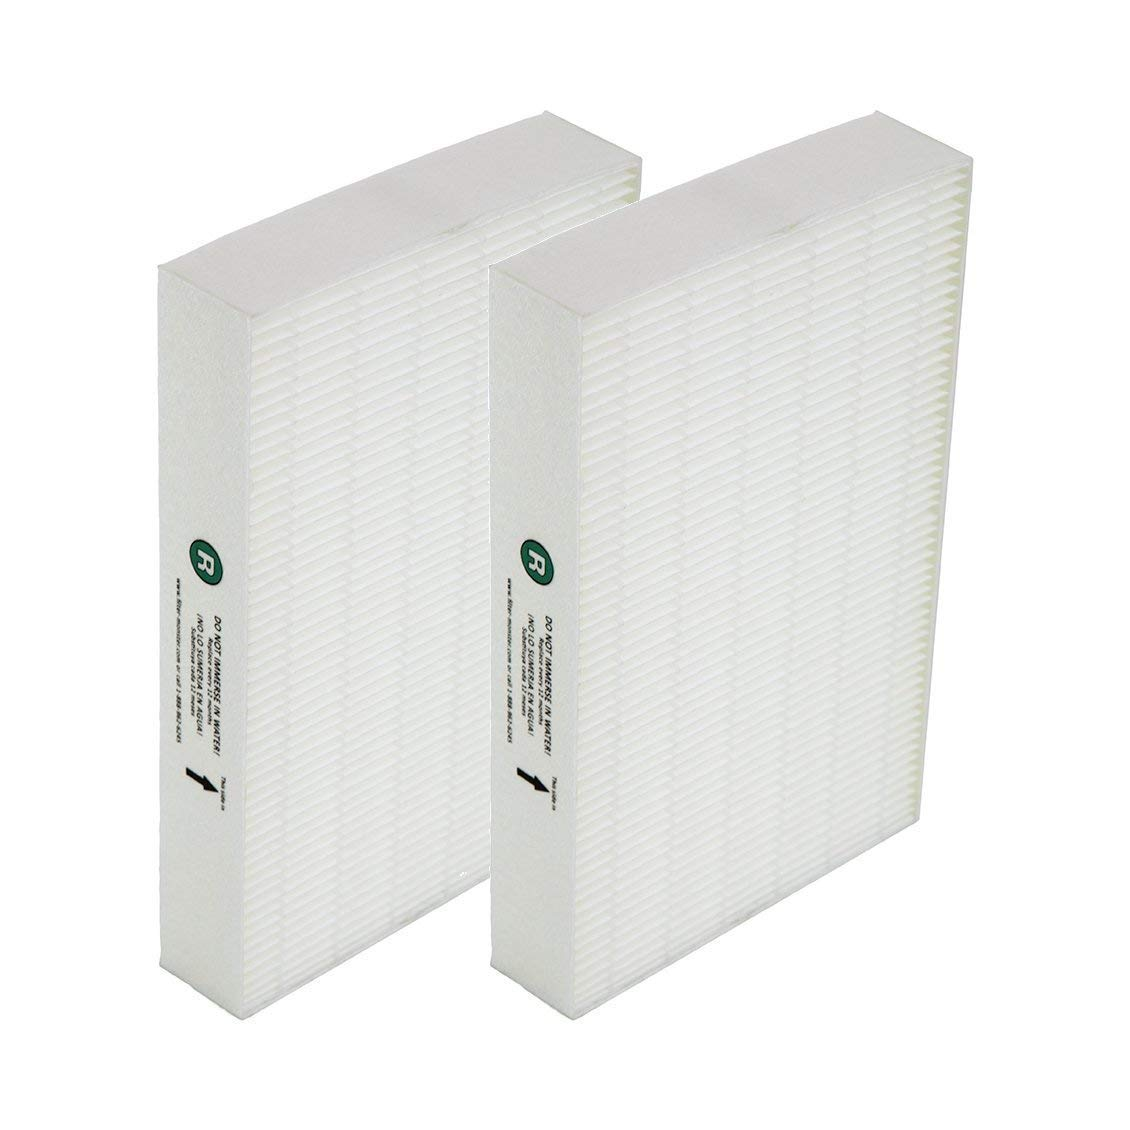 Breathe Naturally Replacement For Honeywell True HEPA Filter R 2-pack HRF-R2